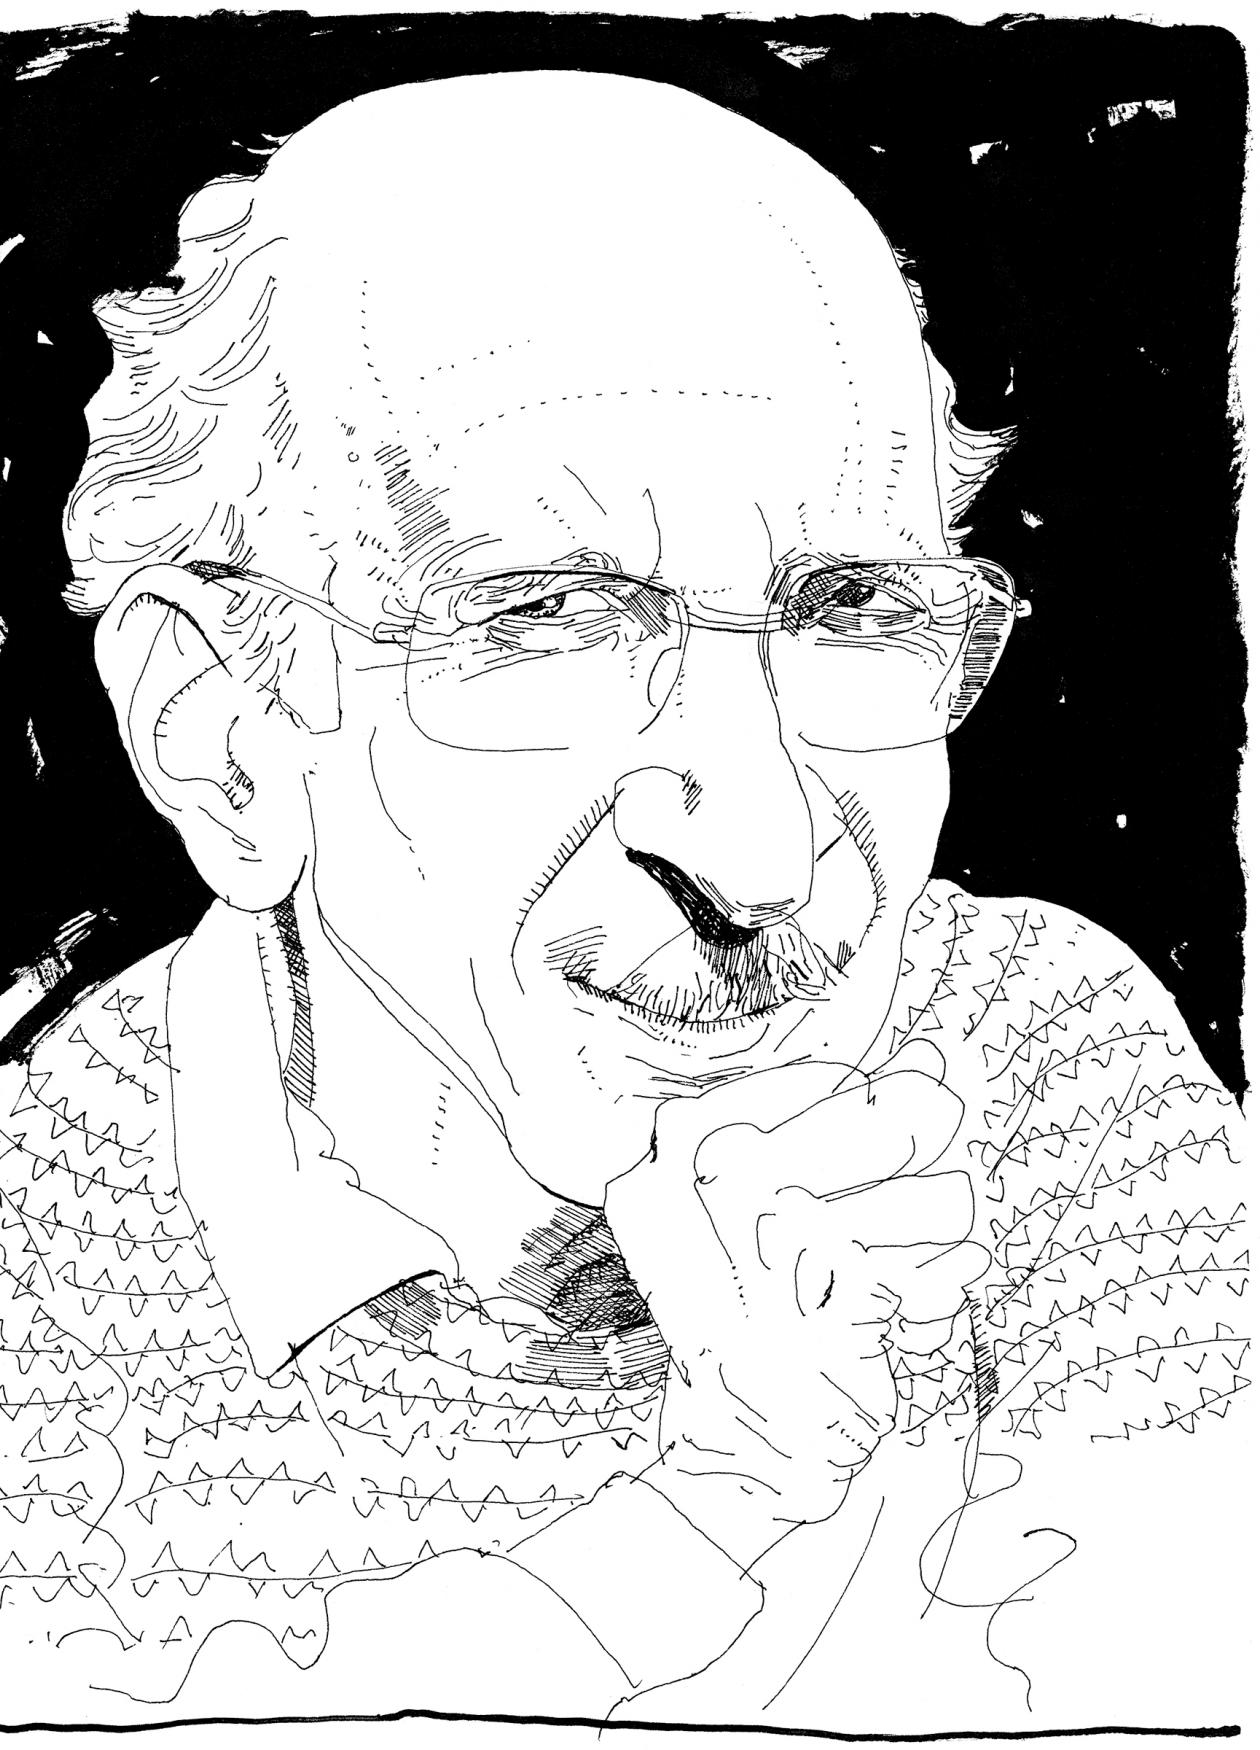 Drawing of Malamud, wearing rectangular glasses, collared shirt and a striped sweater, holding his fist to his chin and smirking at the viewer